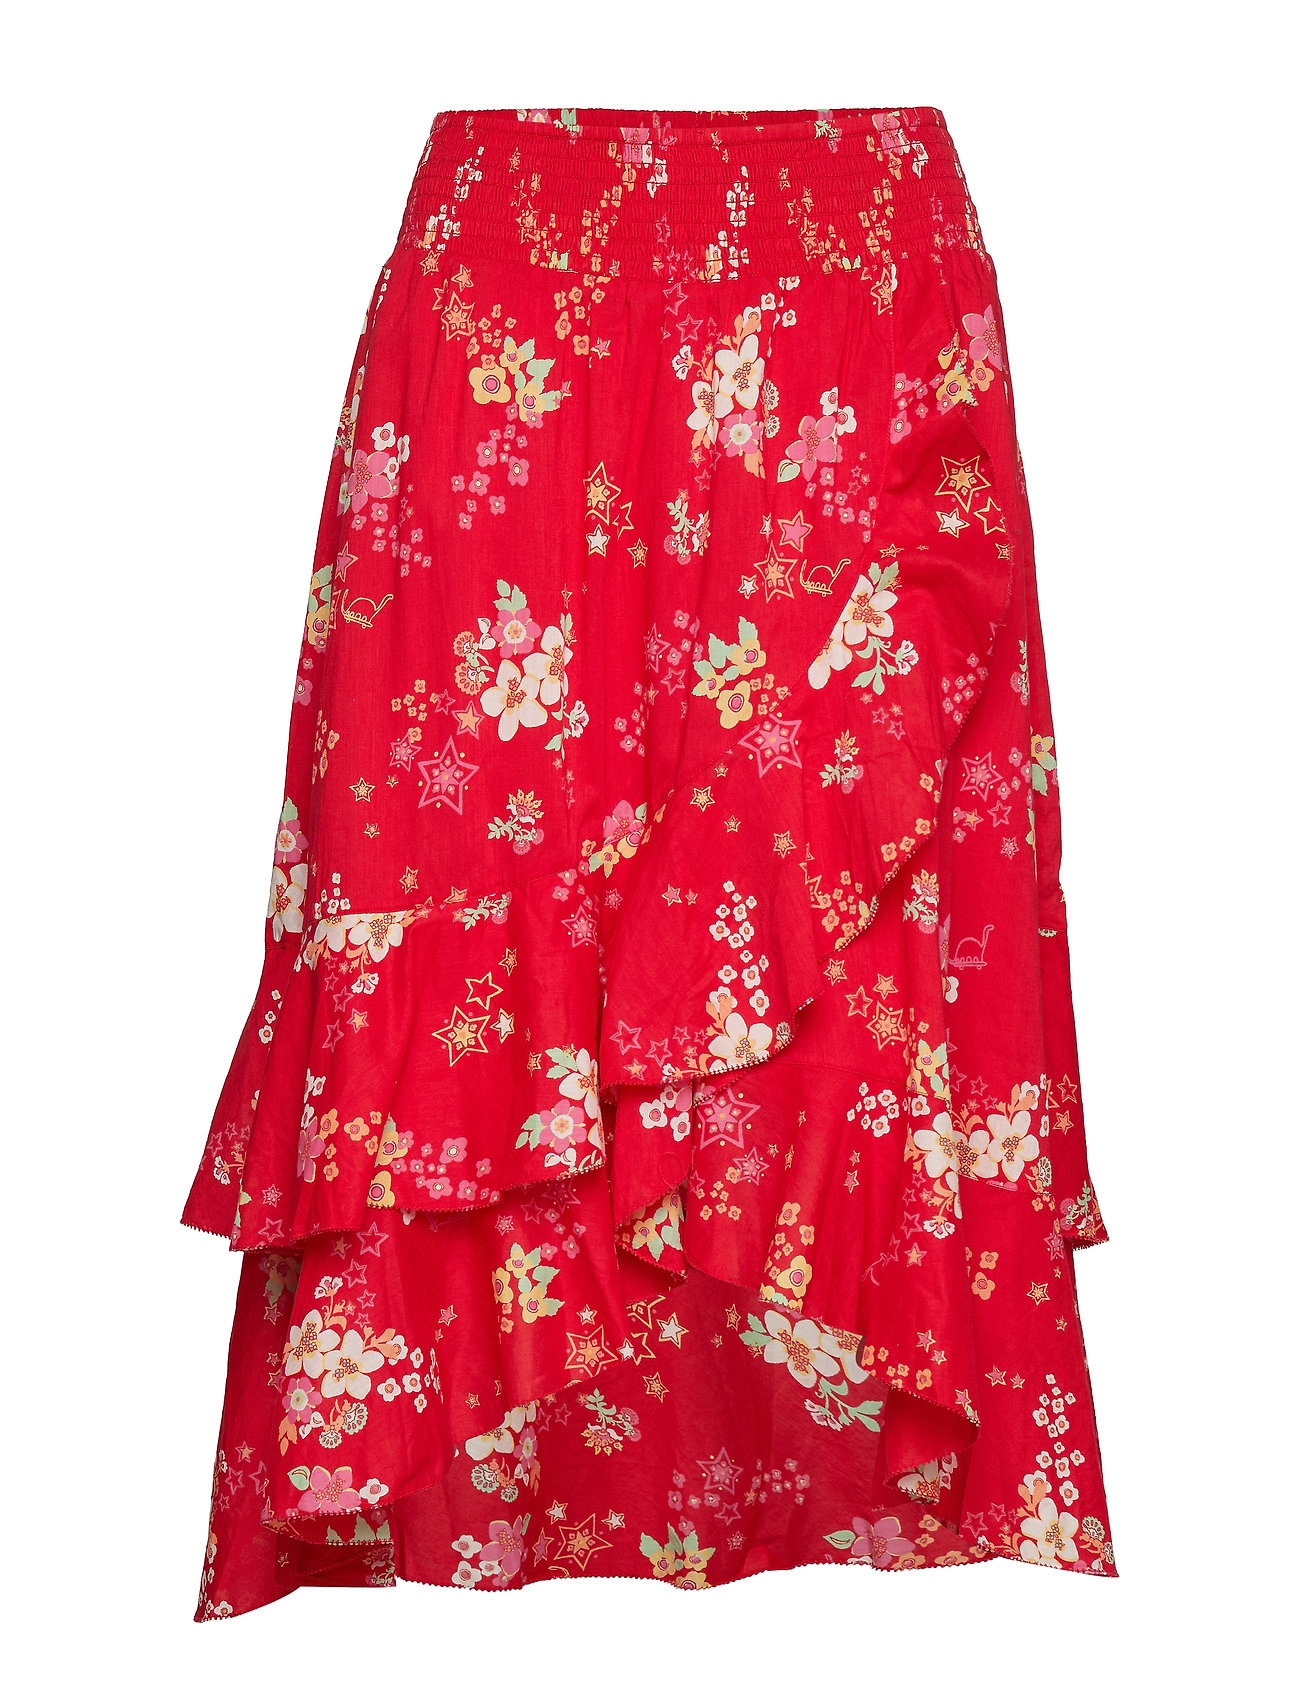 ODD MOLLY marvelously free skirt - RED TULIP